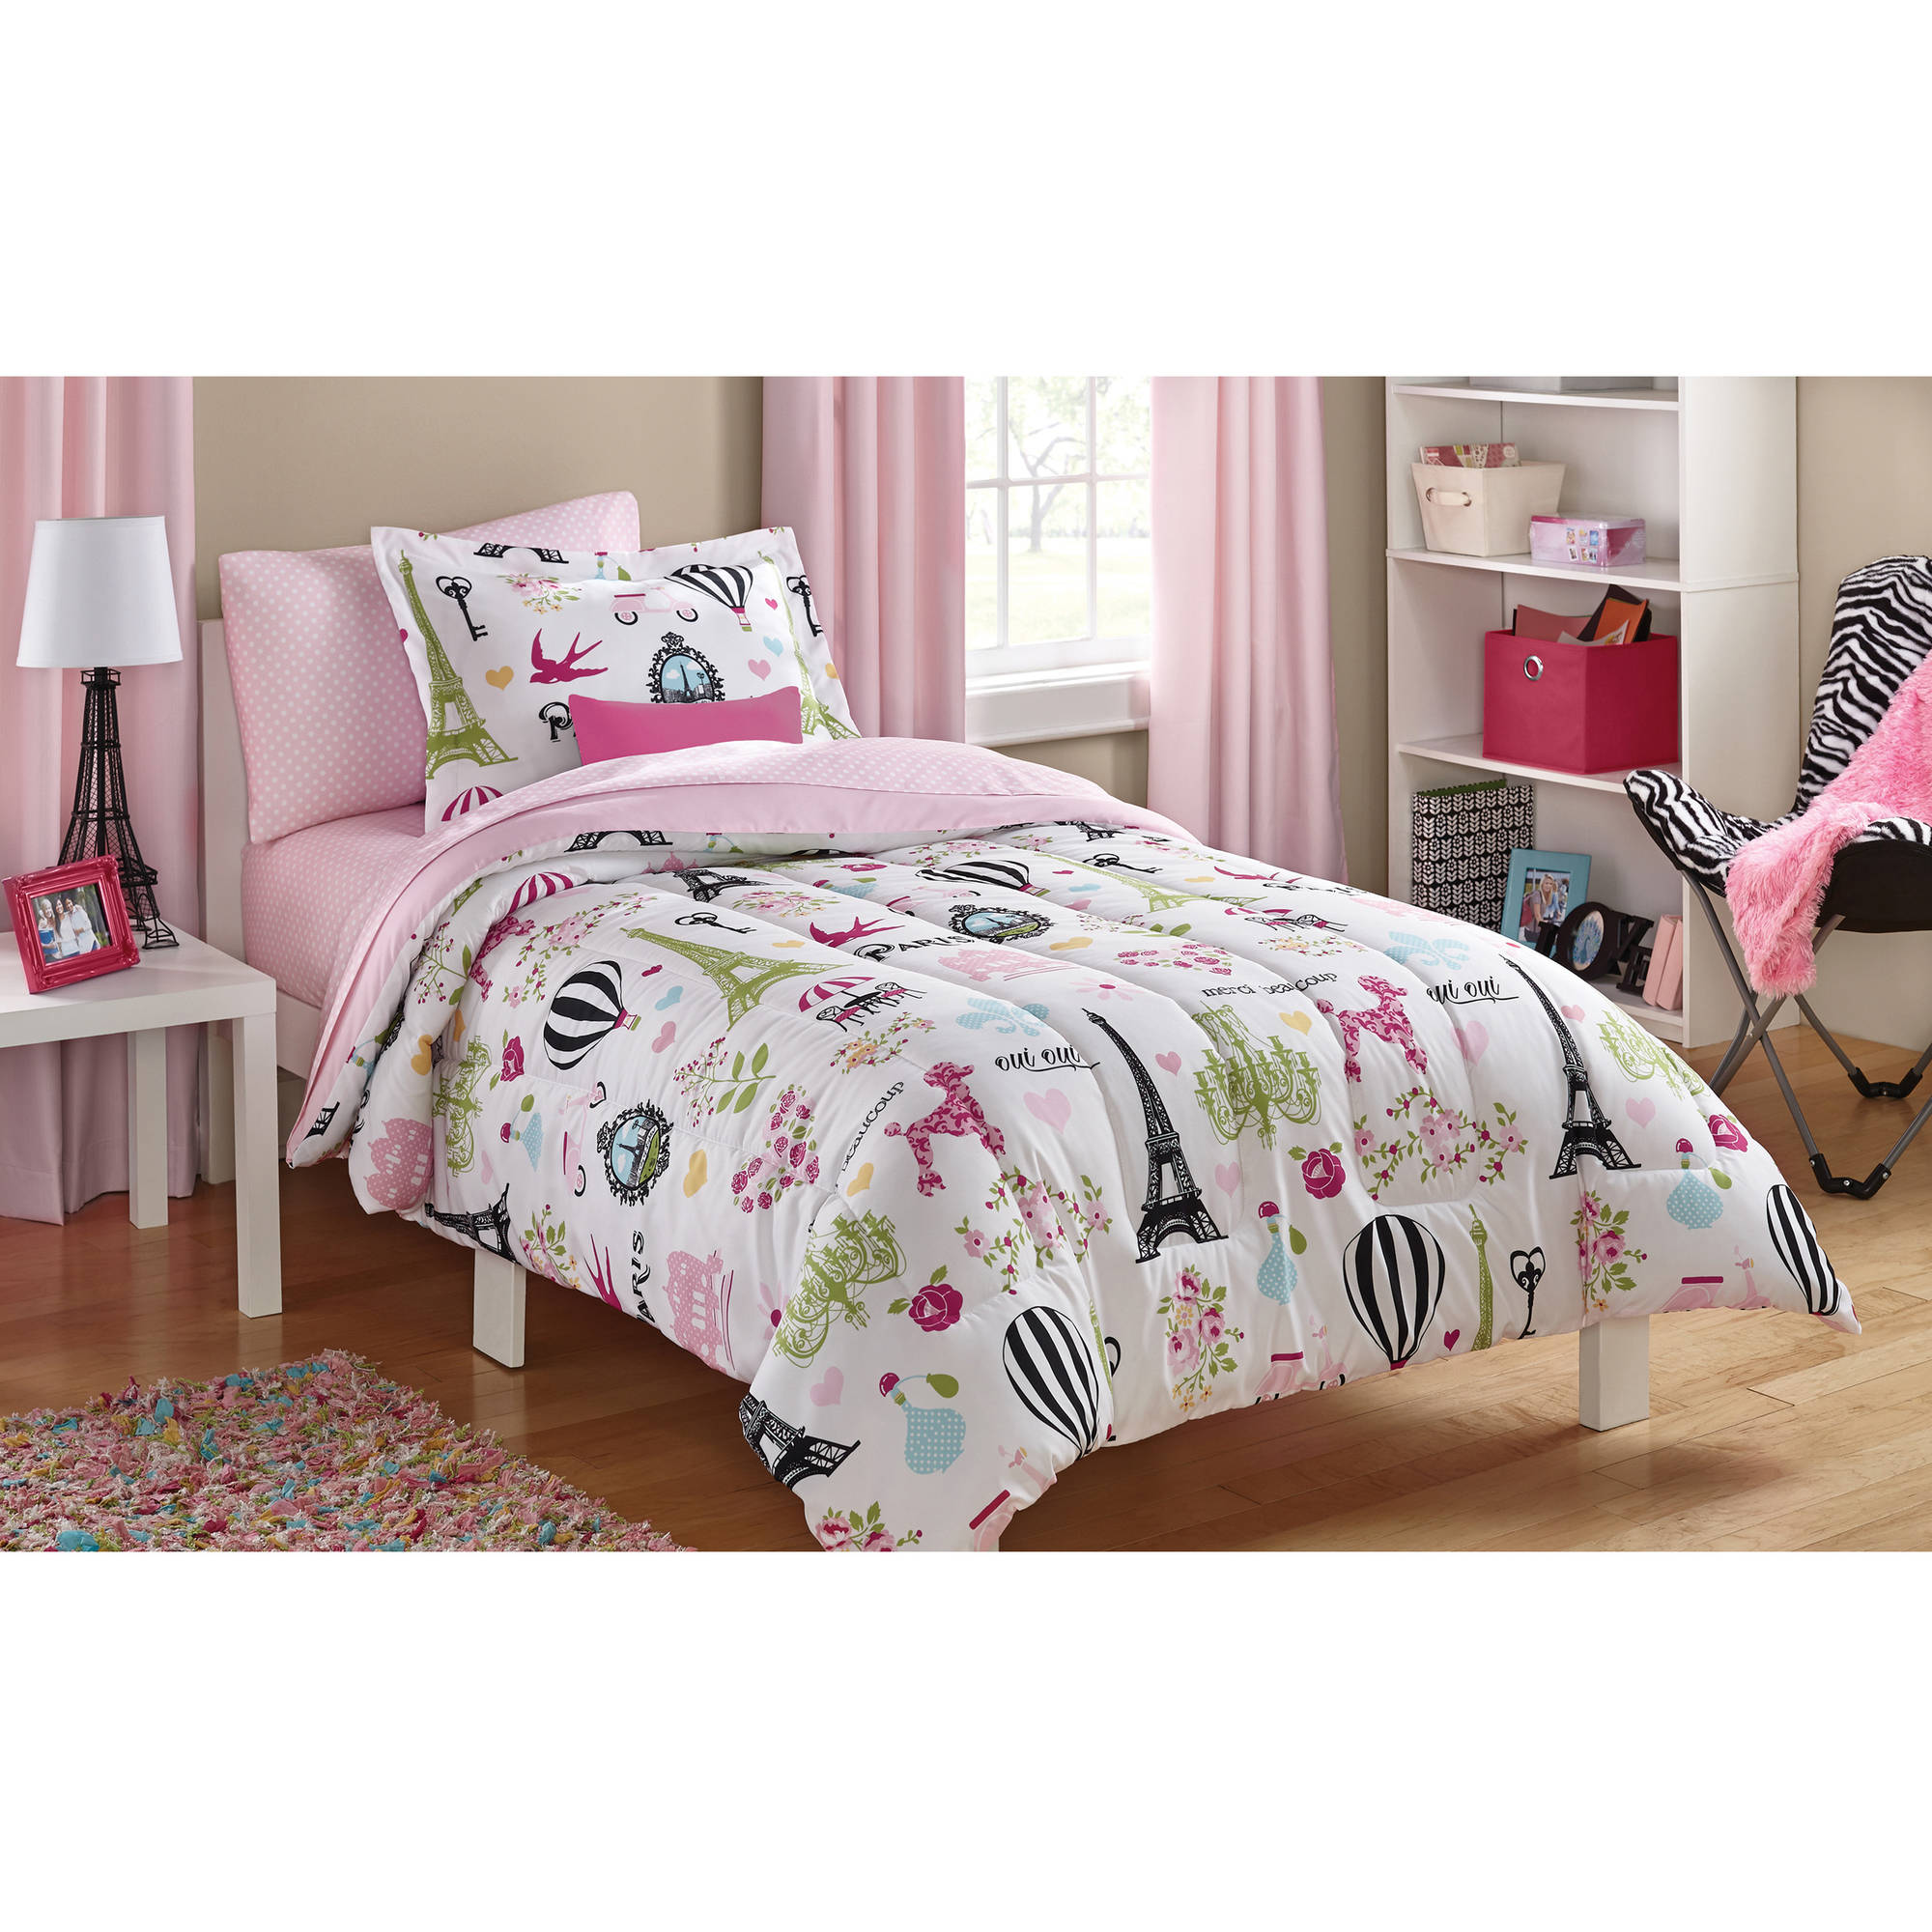 Bedding sets for teenage girls walmart - Bedding Sets For Teenage Girls Walmart 46